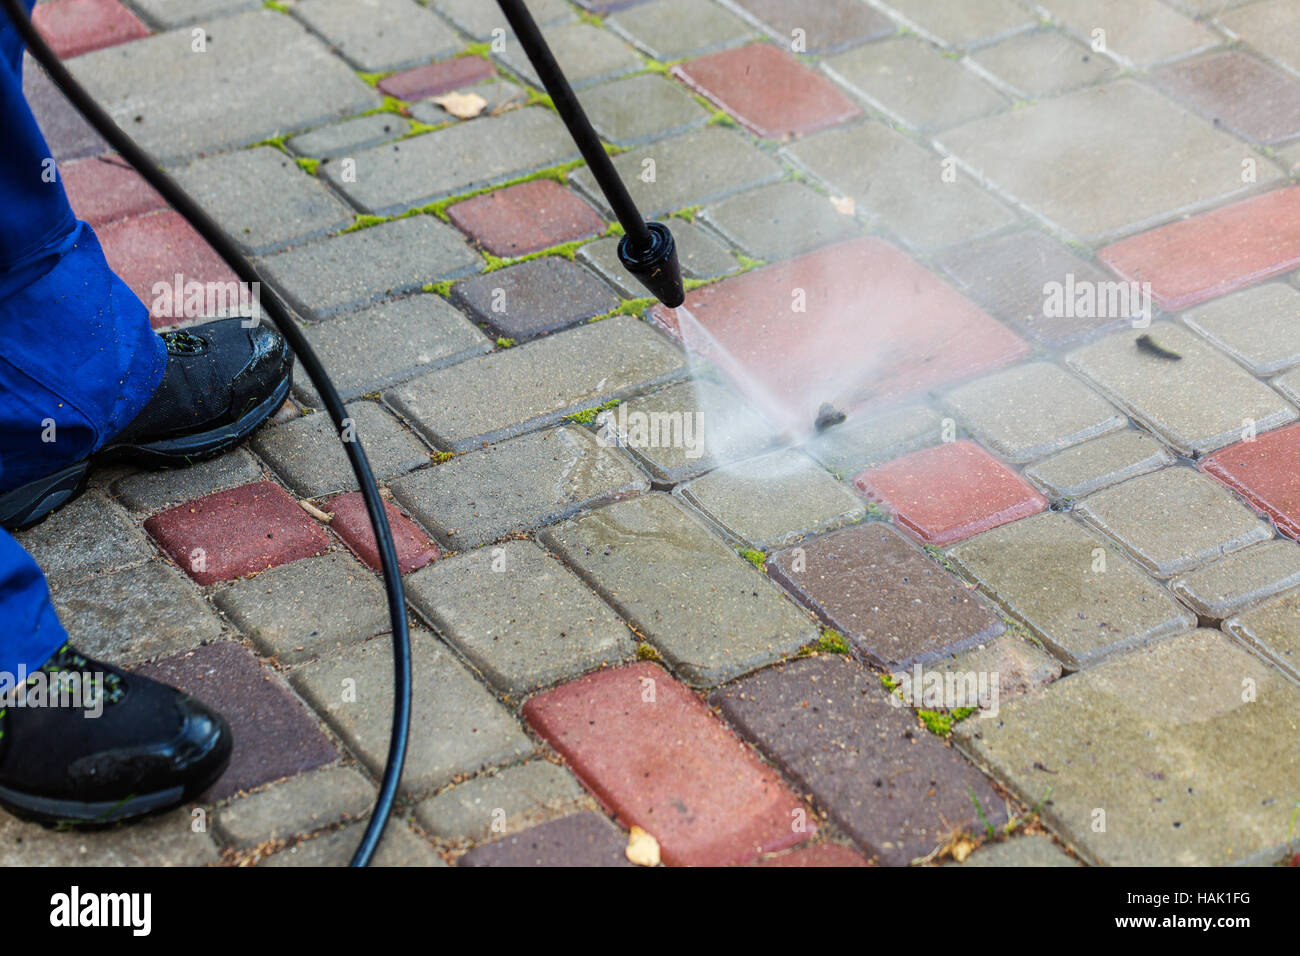 pavement cleaning with high pressure washer - Stock Image